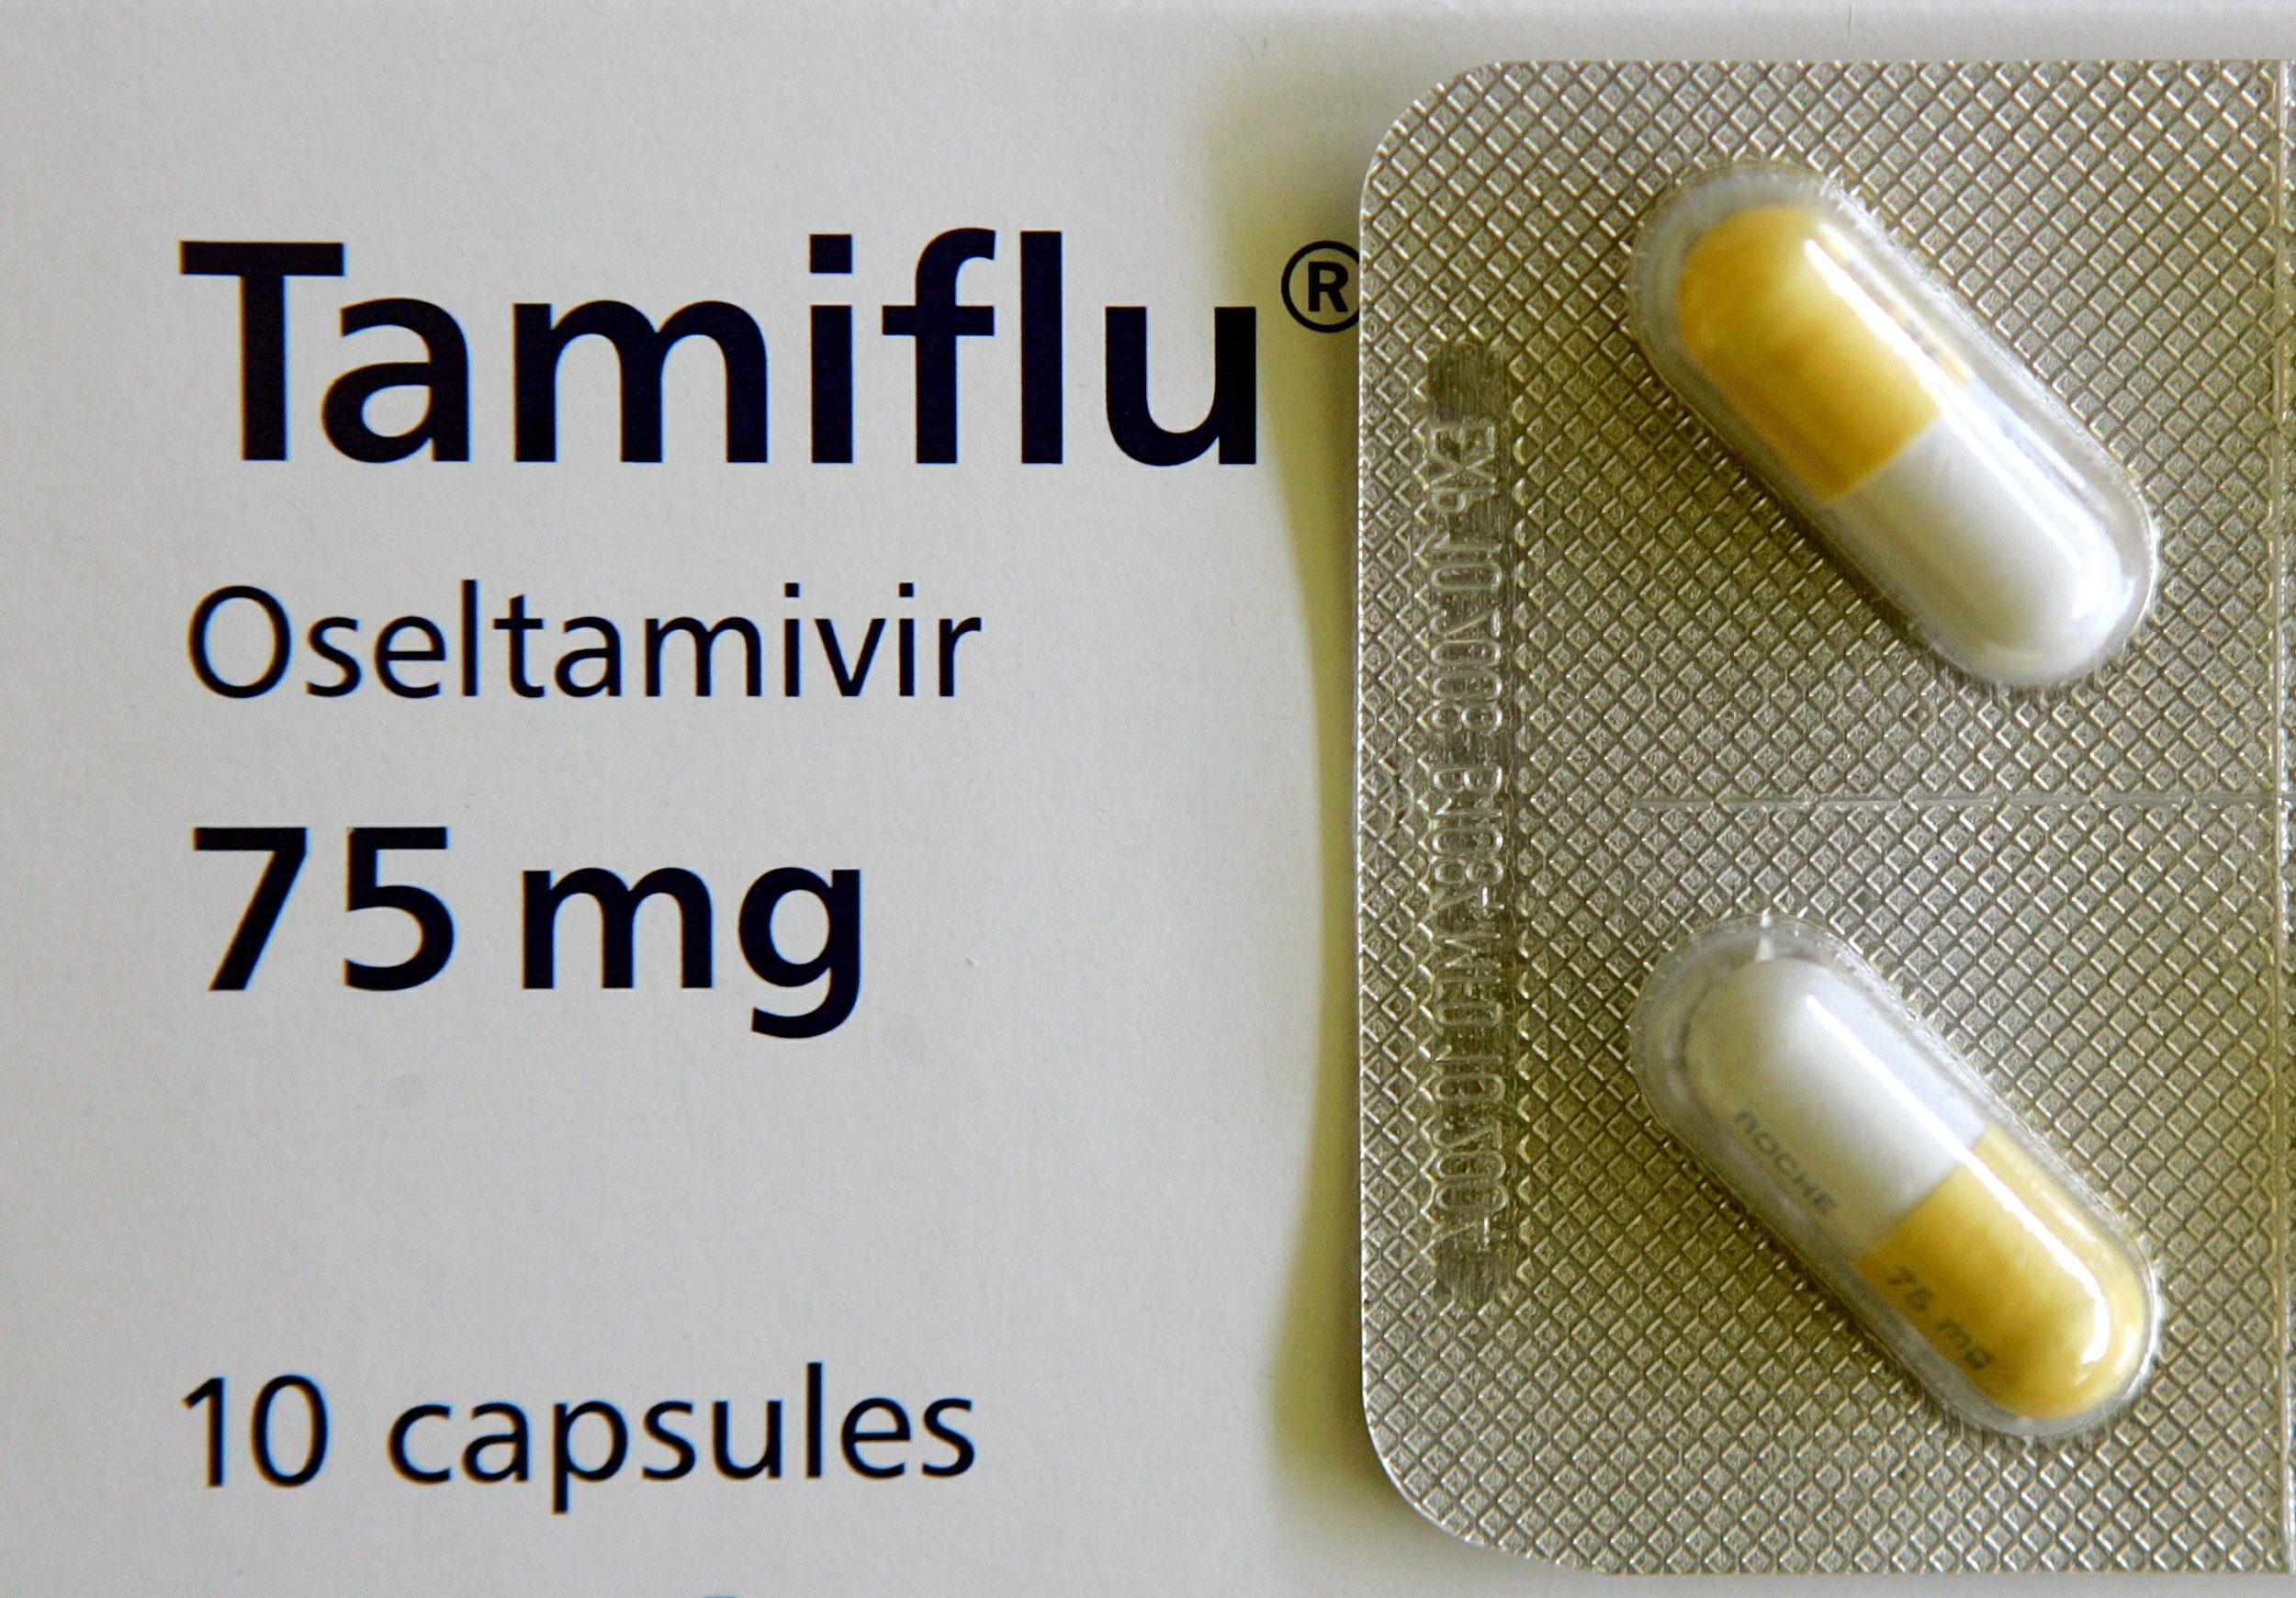 How much is tamiflu cost